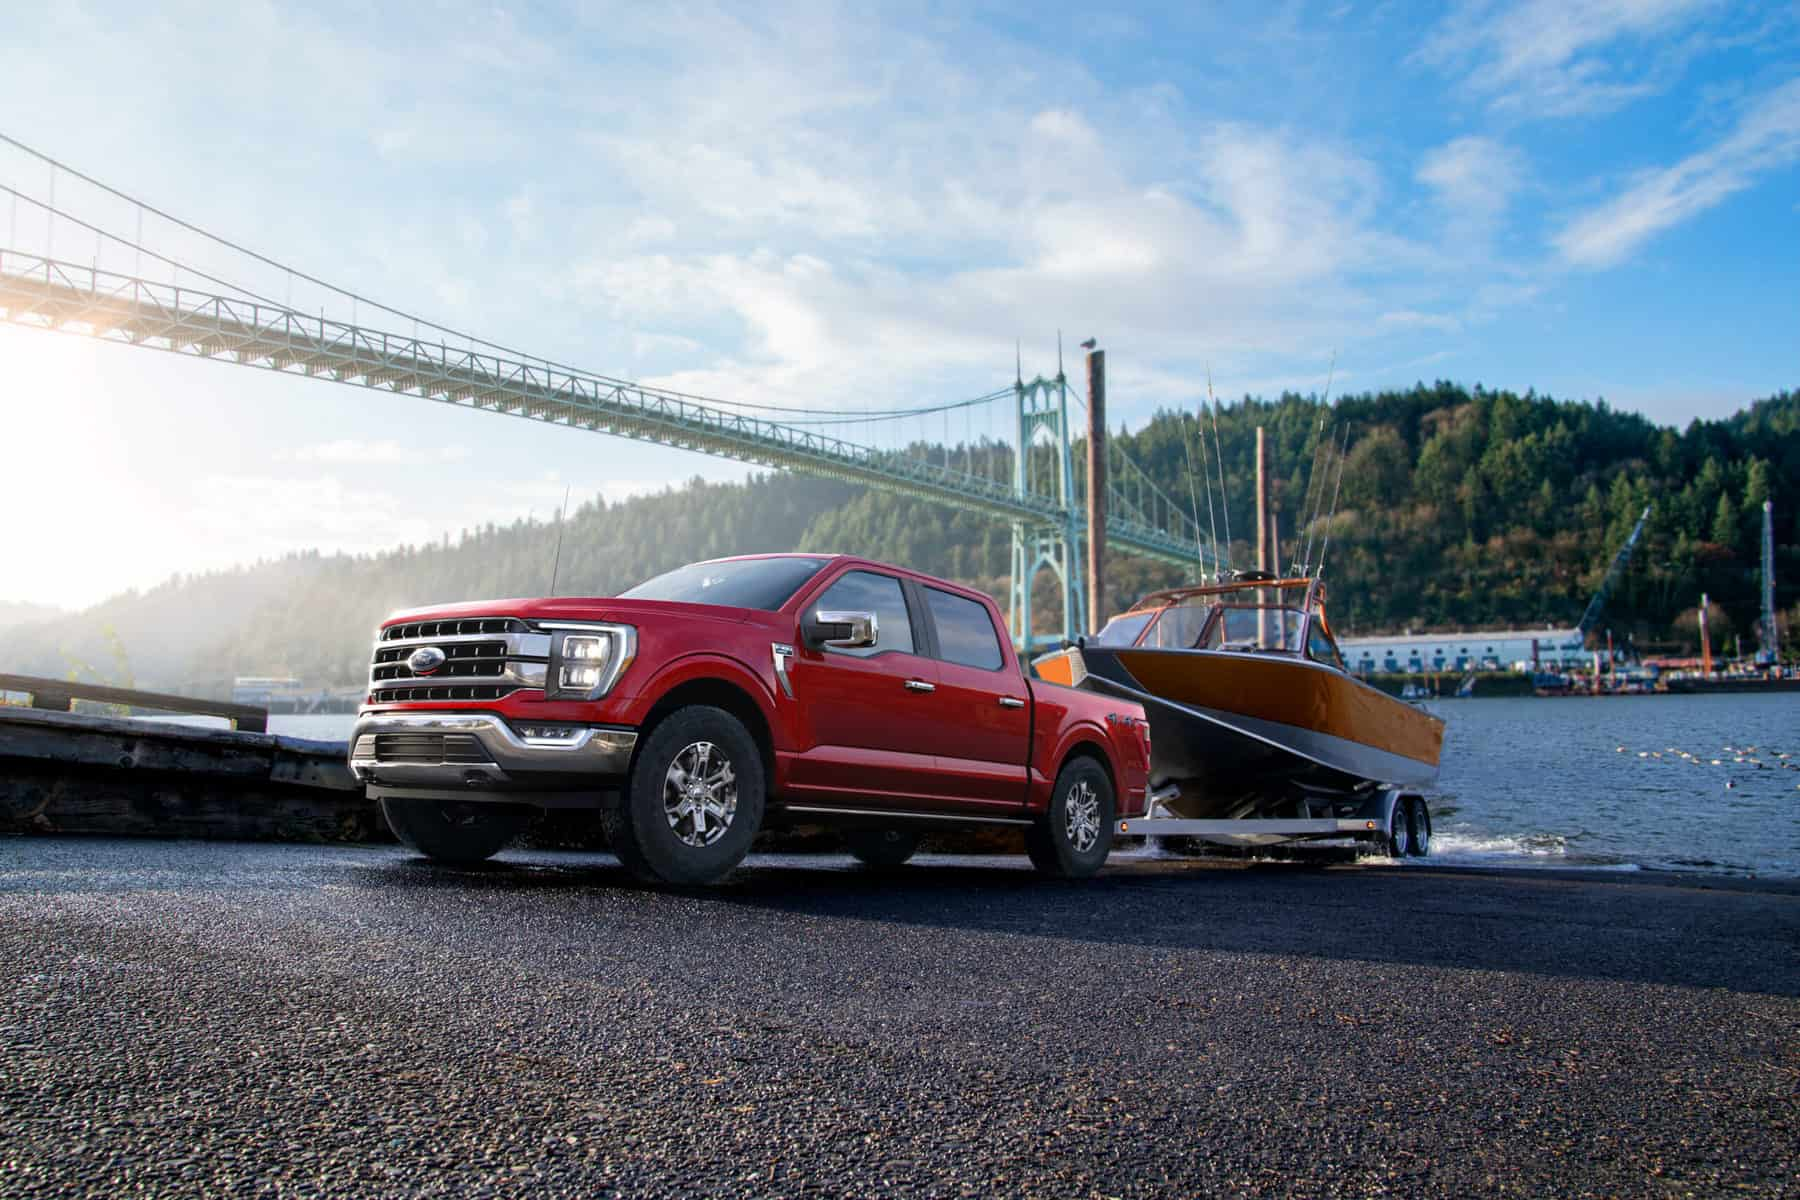 Is Tow Mode Necessary On A Ford Truck?